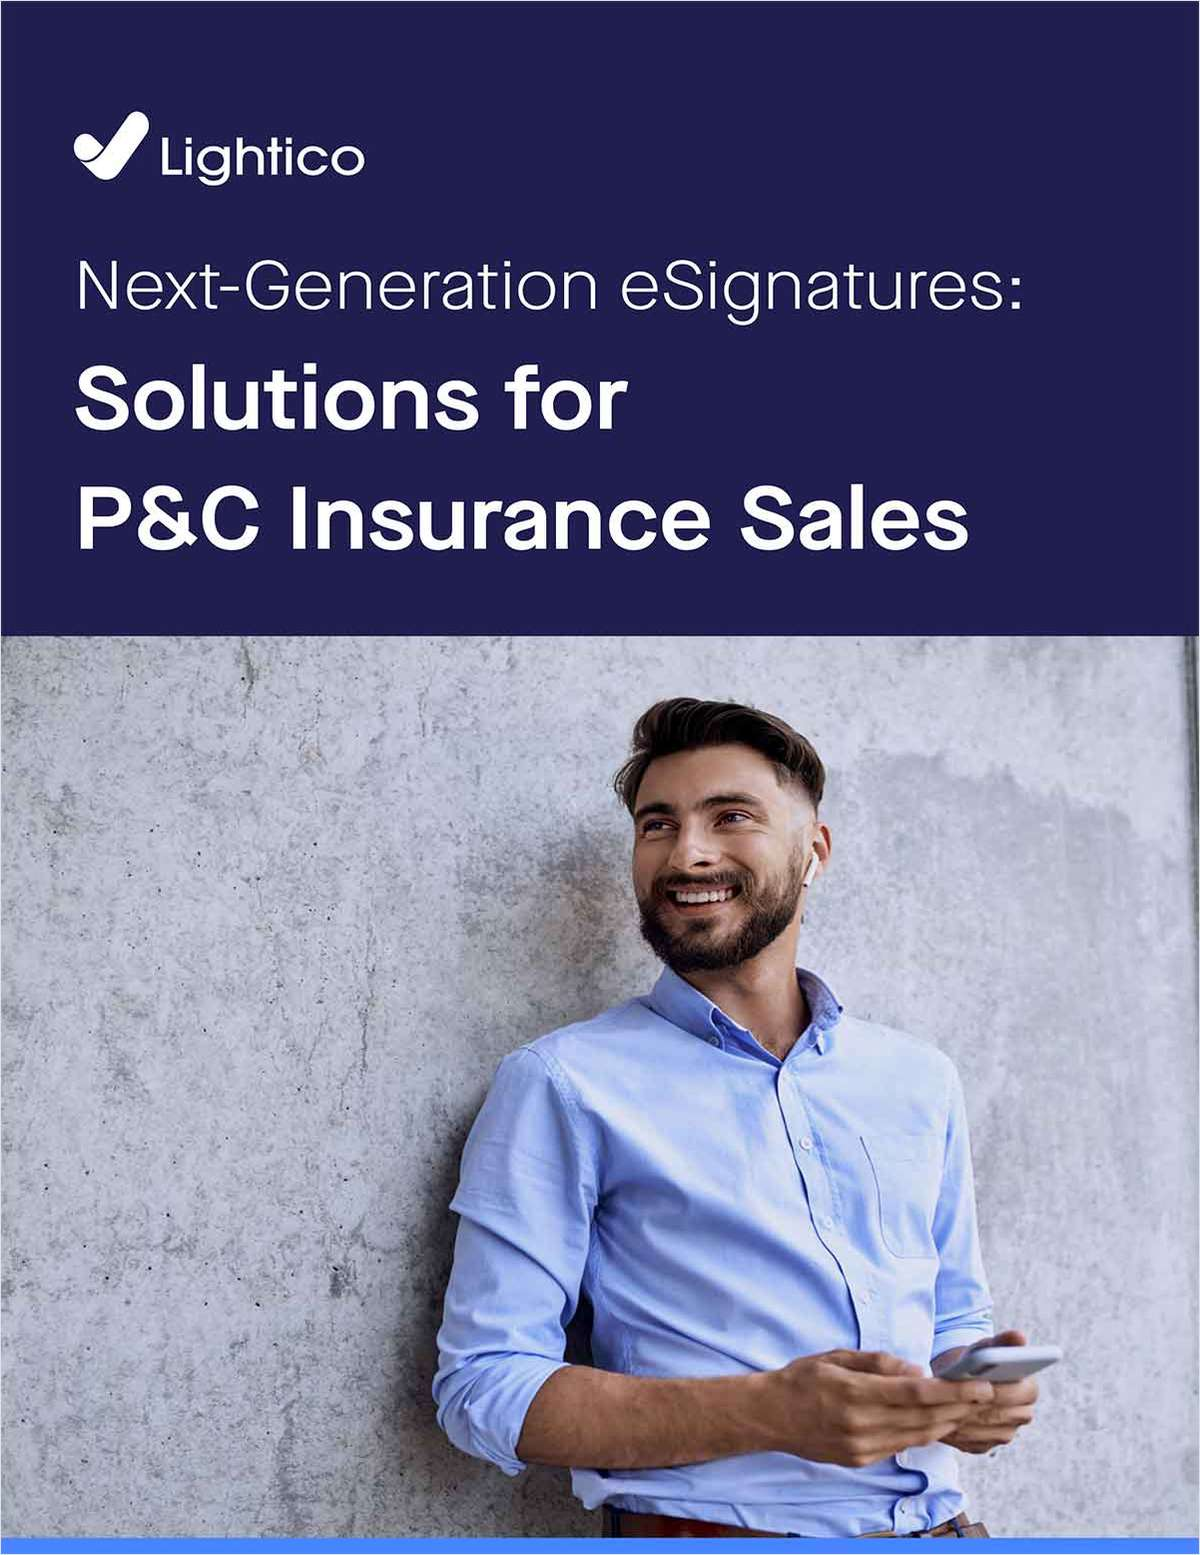 Next-Generation eSignature Solutions to Grow Your Business